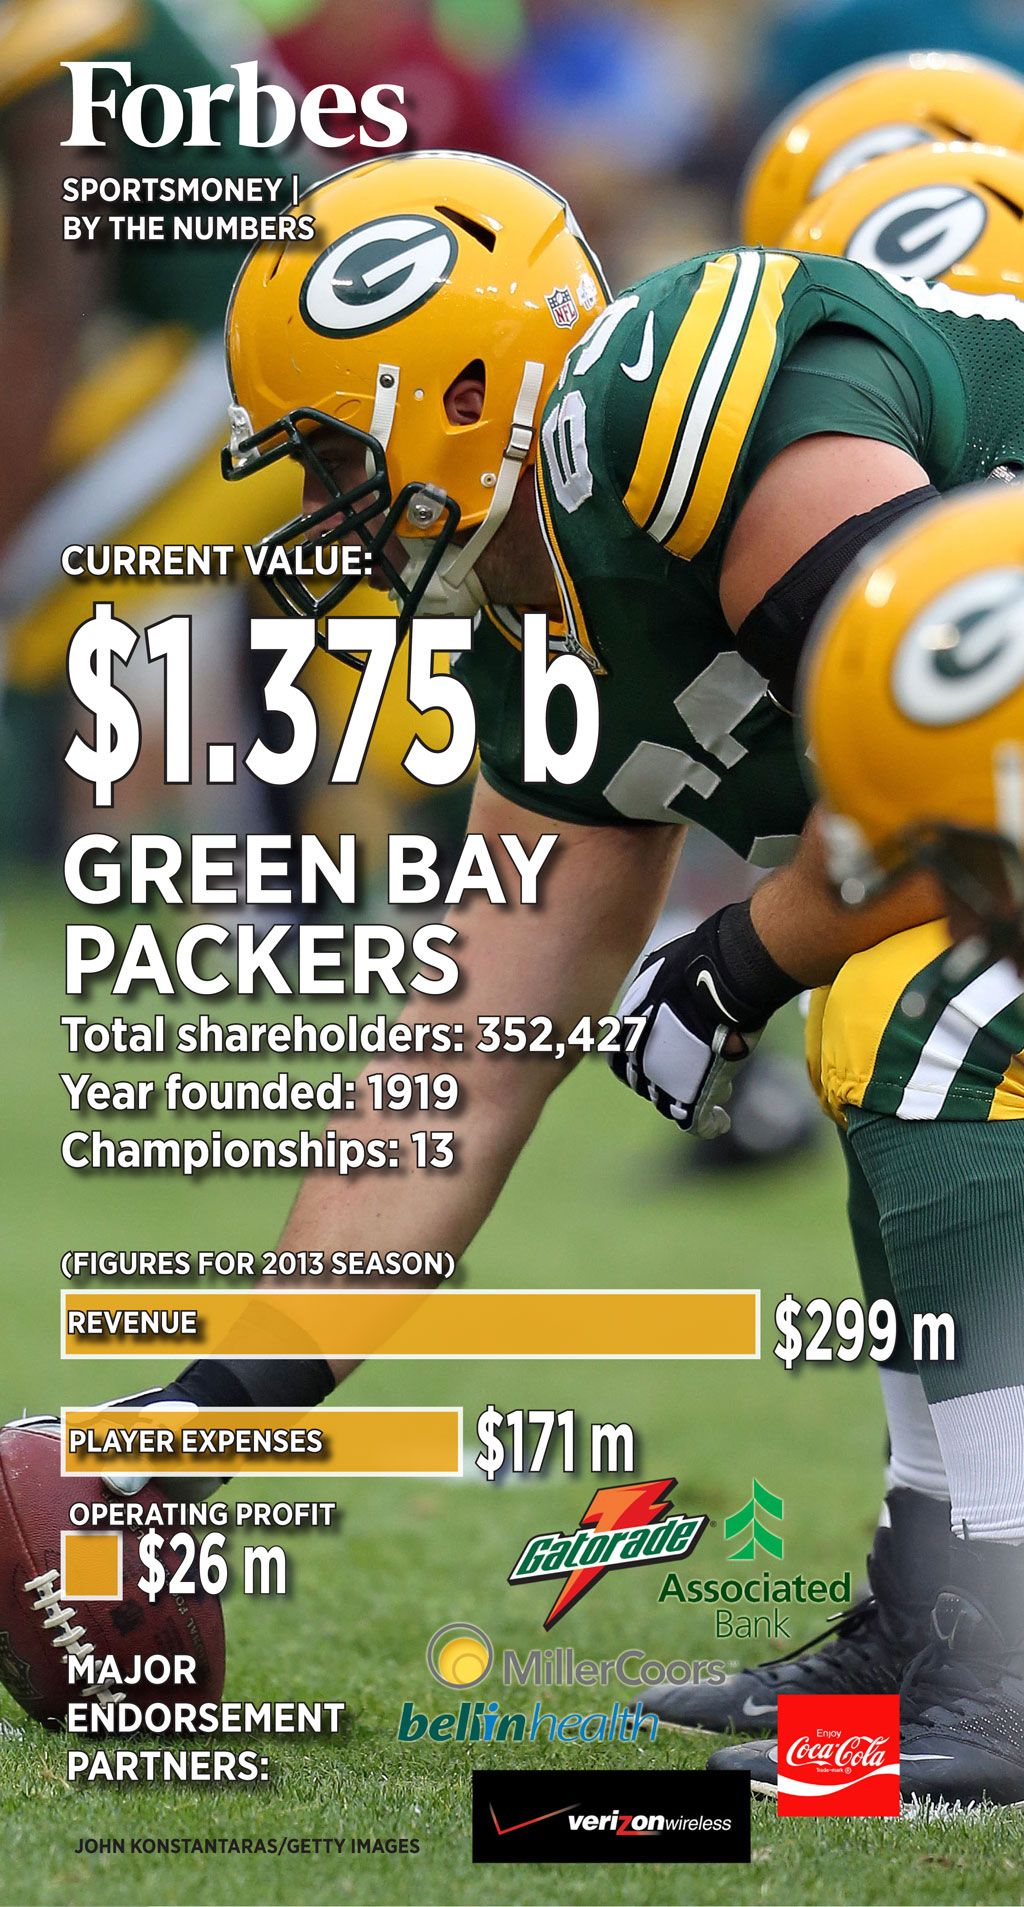 Nfl Kickoff Green Bay Packers By The Numbers Green Bay Real Madrid And Barcelona Green Bay Packers